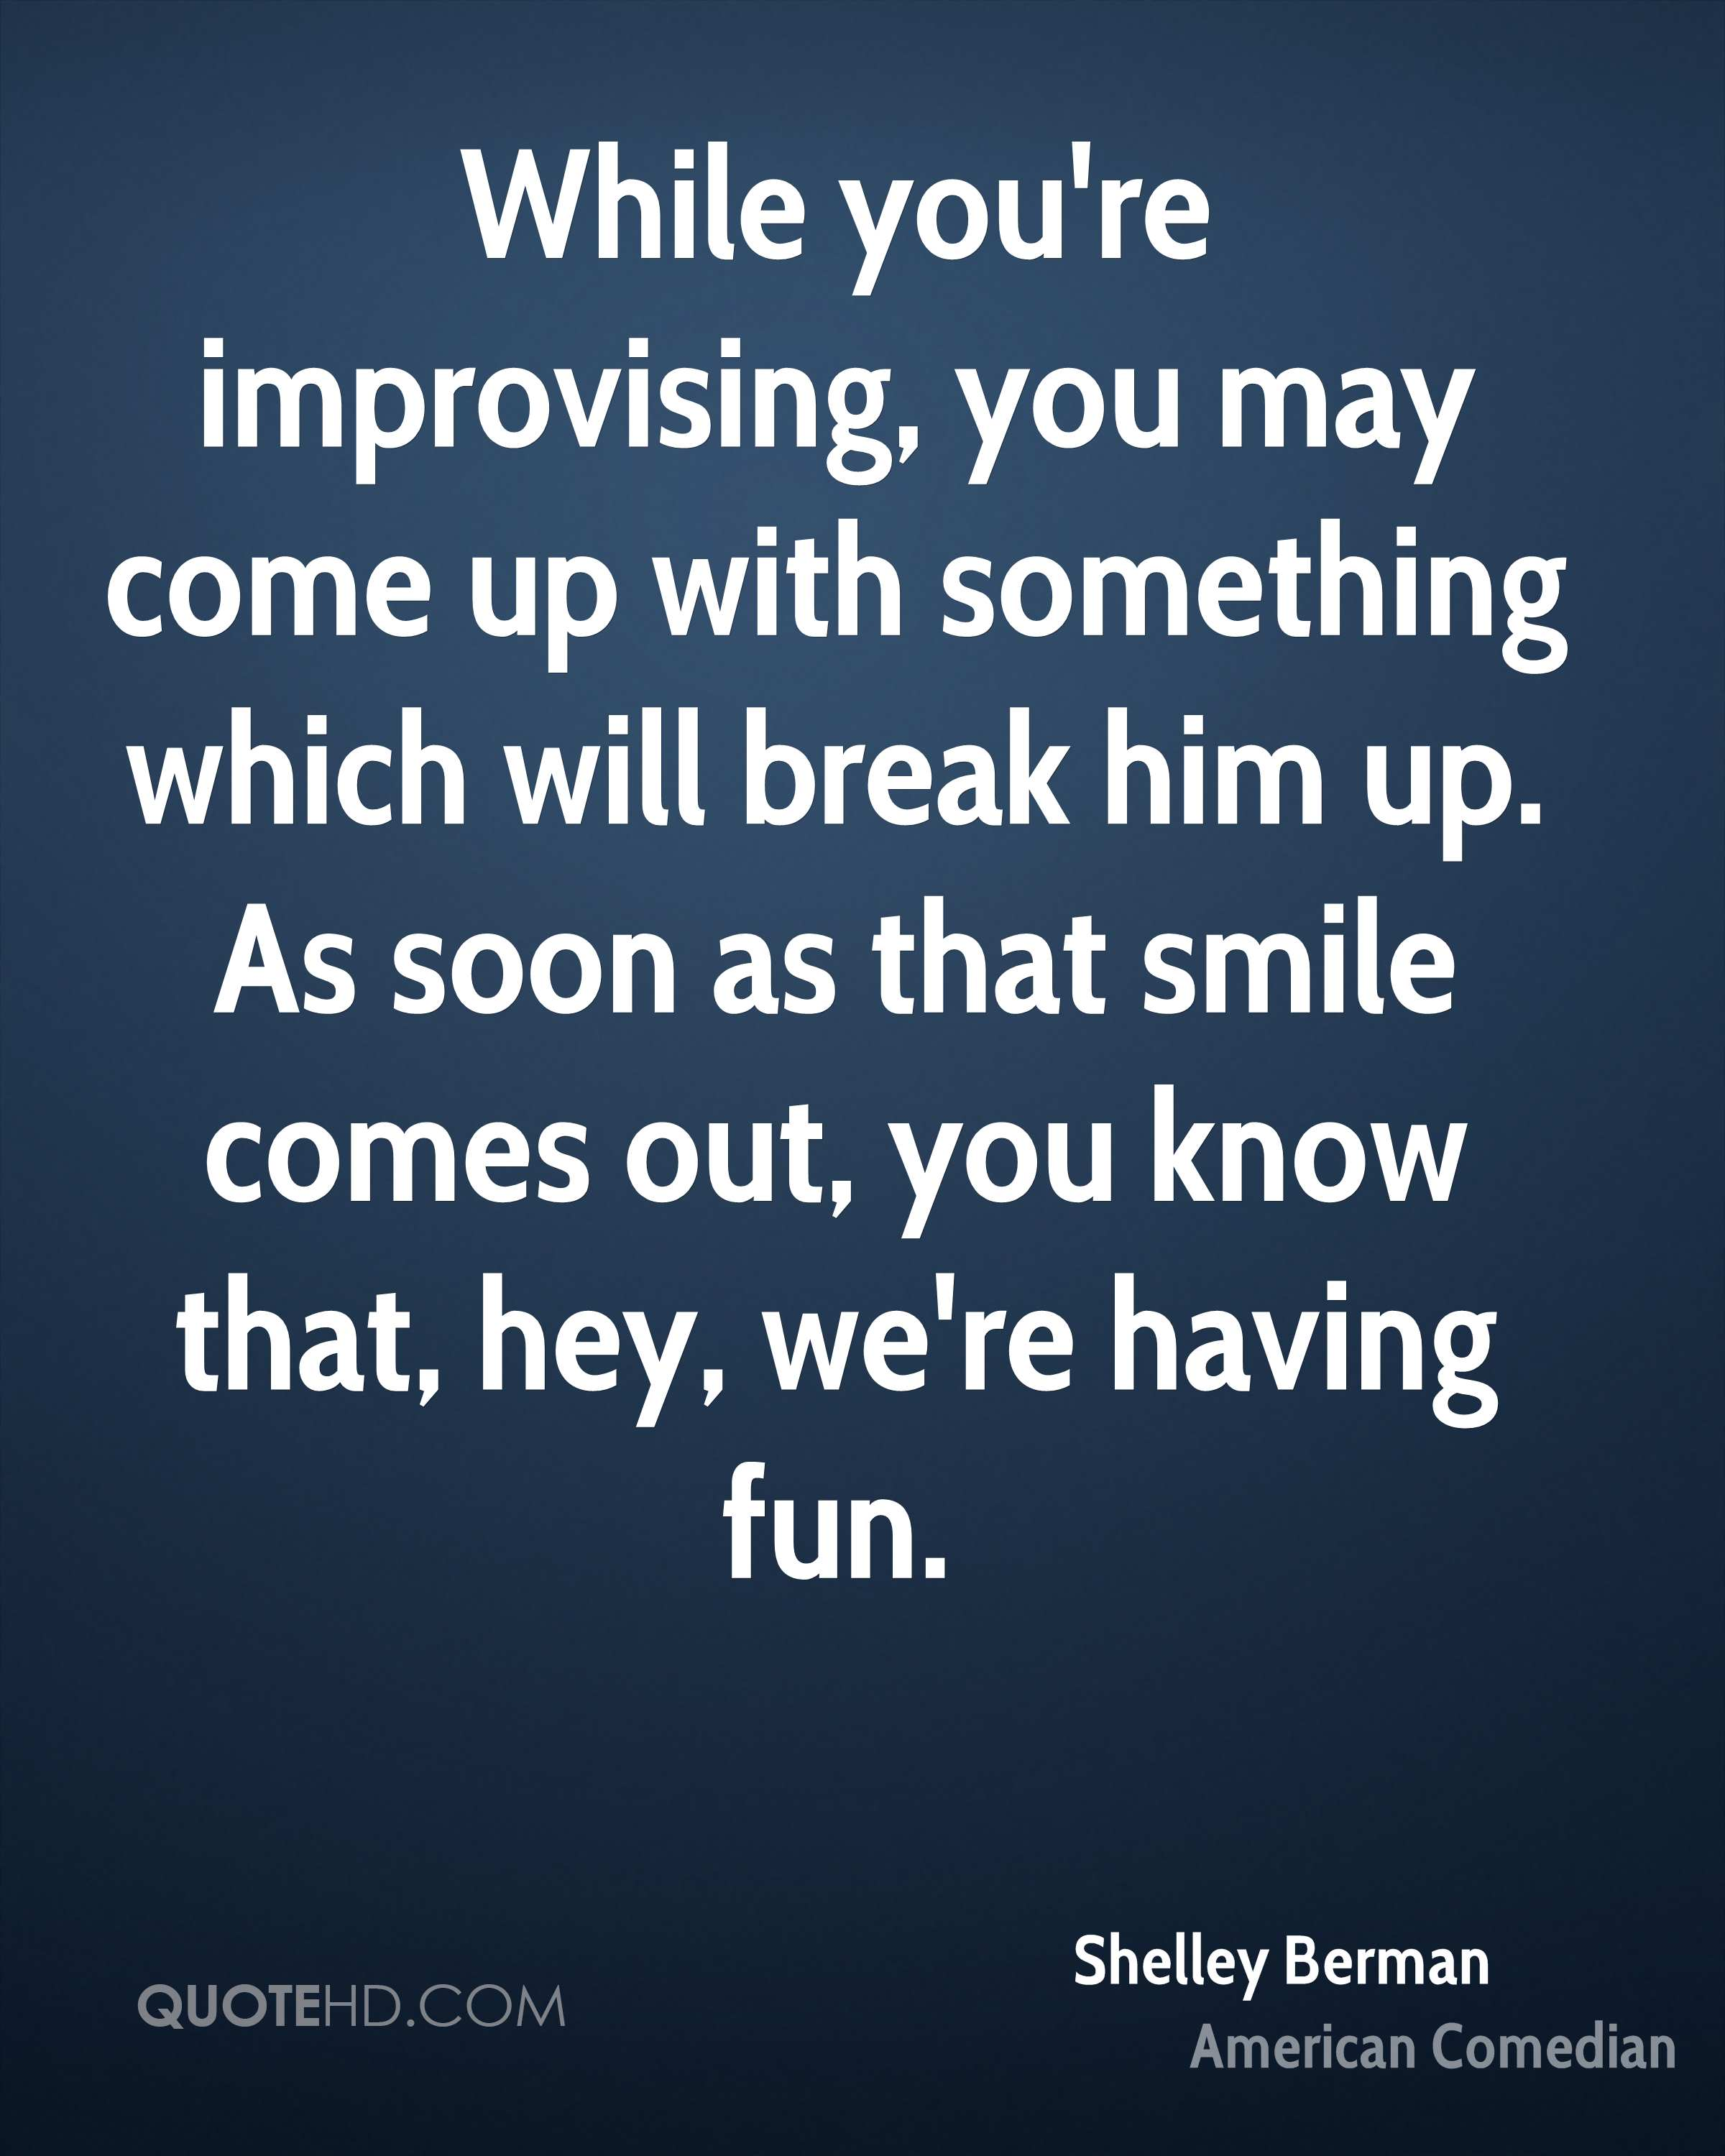 While you're improvising, you may come up with something which will break him up. As soon as that smile comes out, you know that, hey, we're having fun.